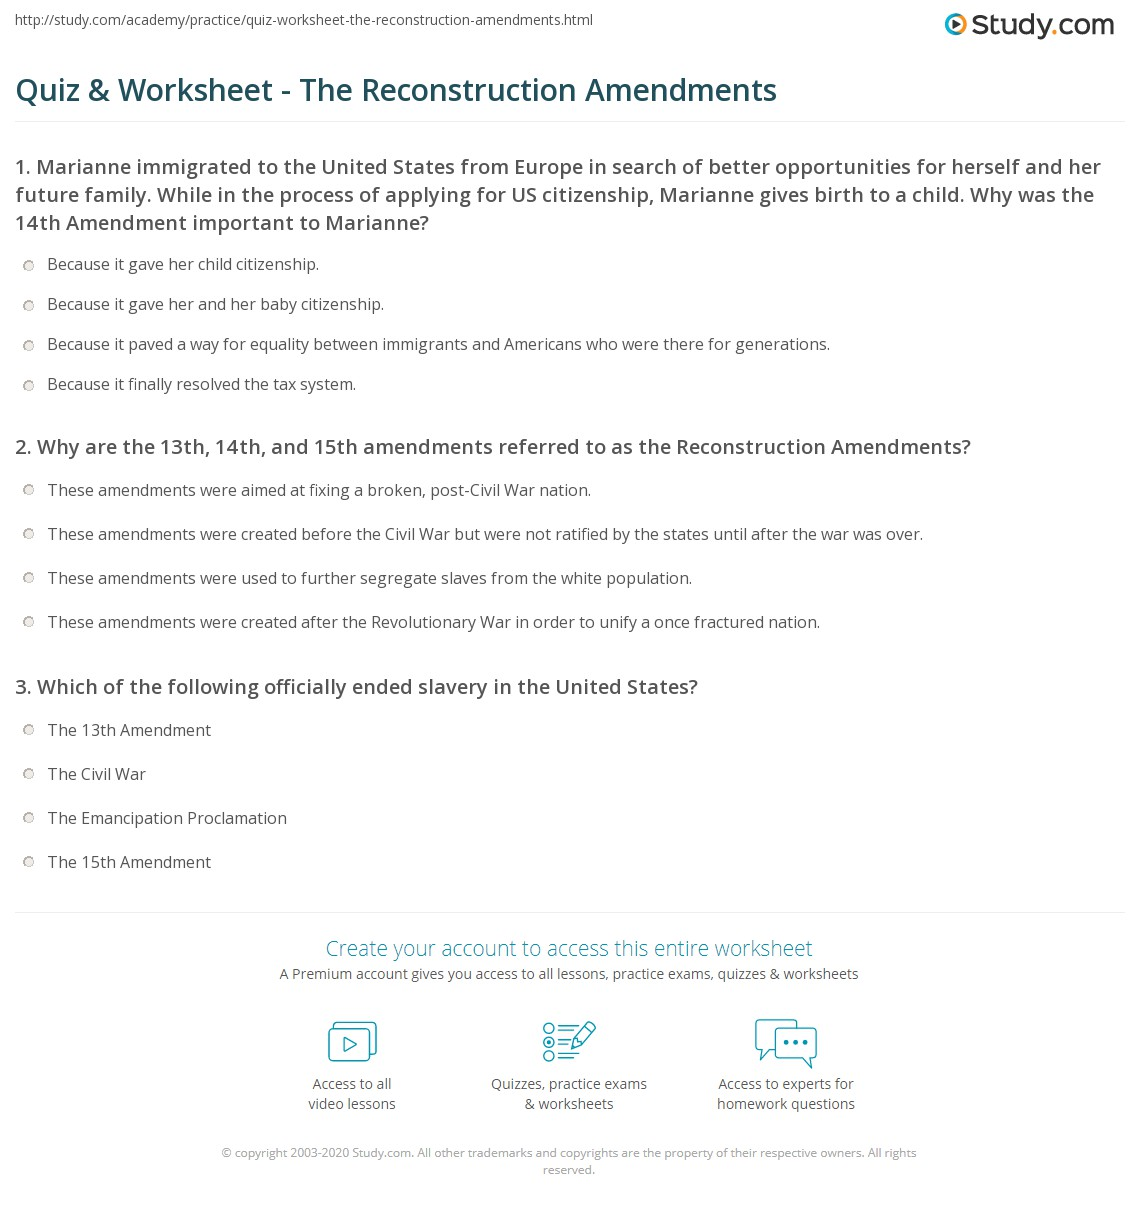 Quiz & Worksheet - The Reconstruction Amendments | Study.com